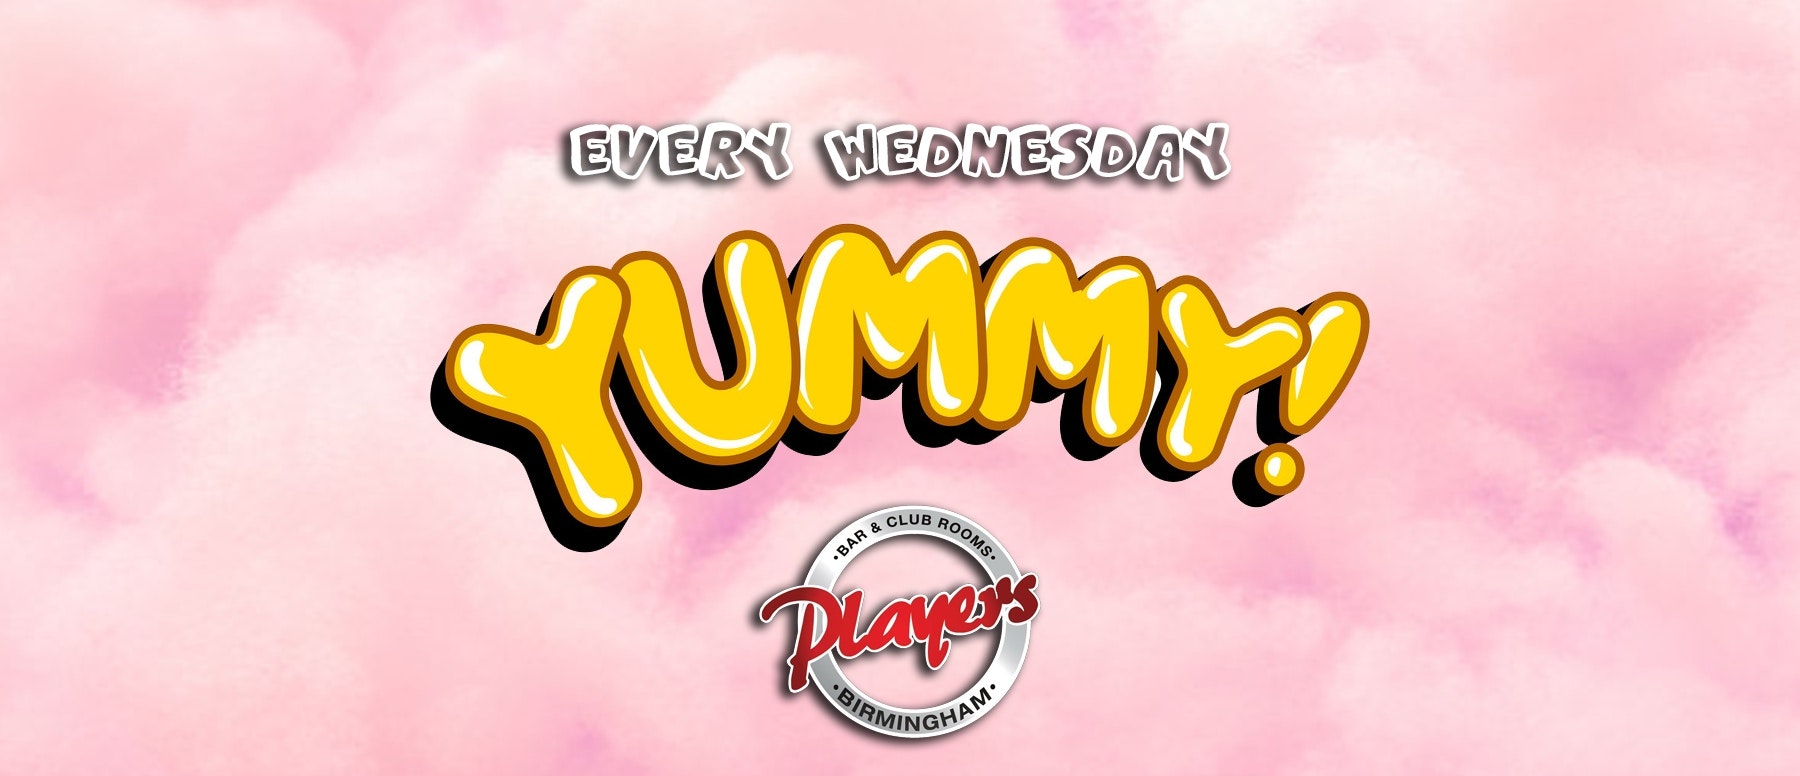 YUMMY – Wednesdays at Players! [Naughty Horse]